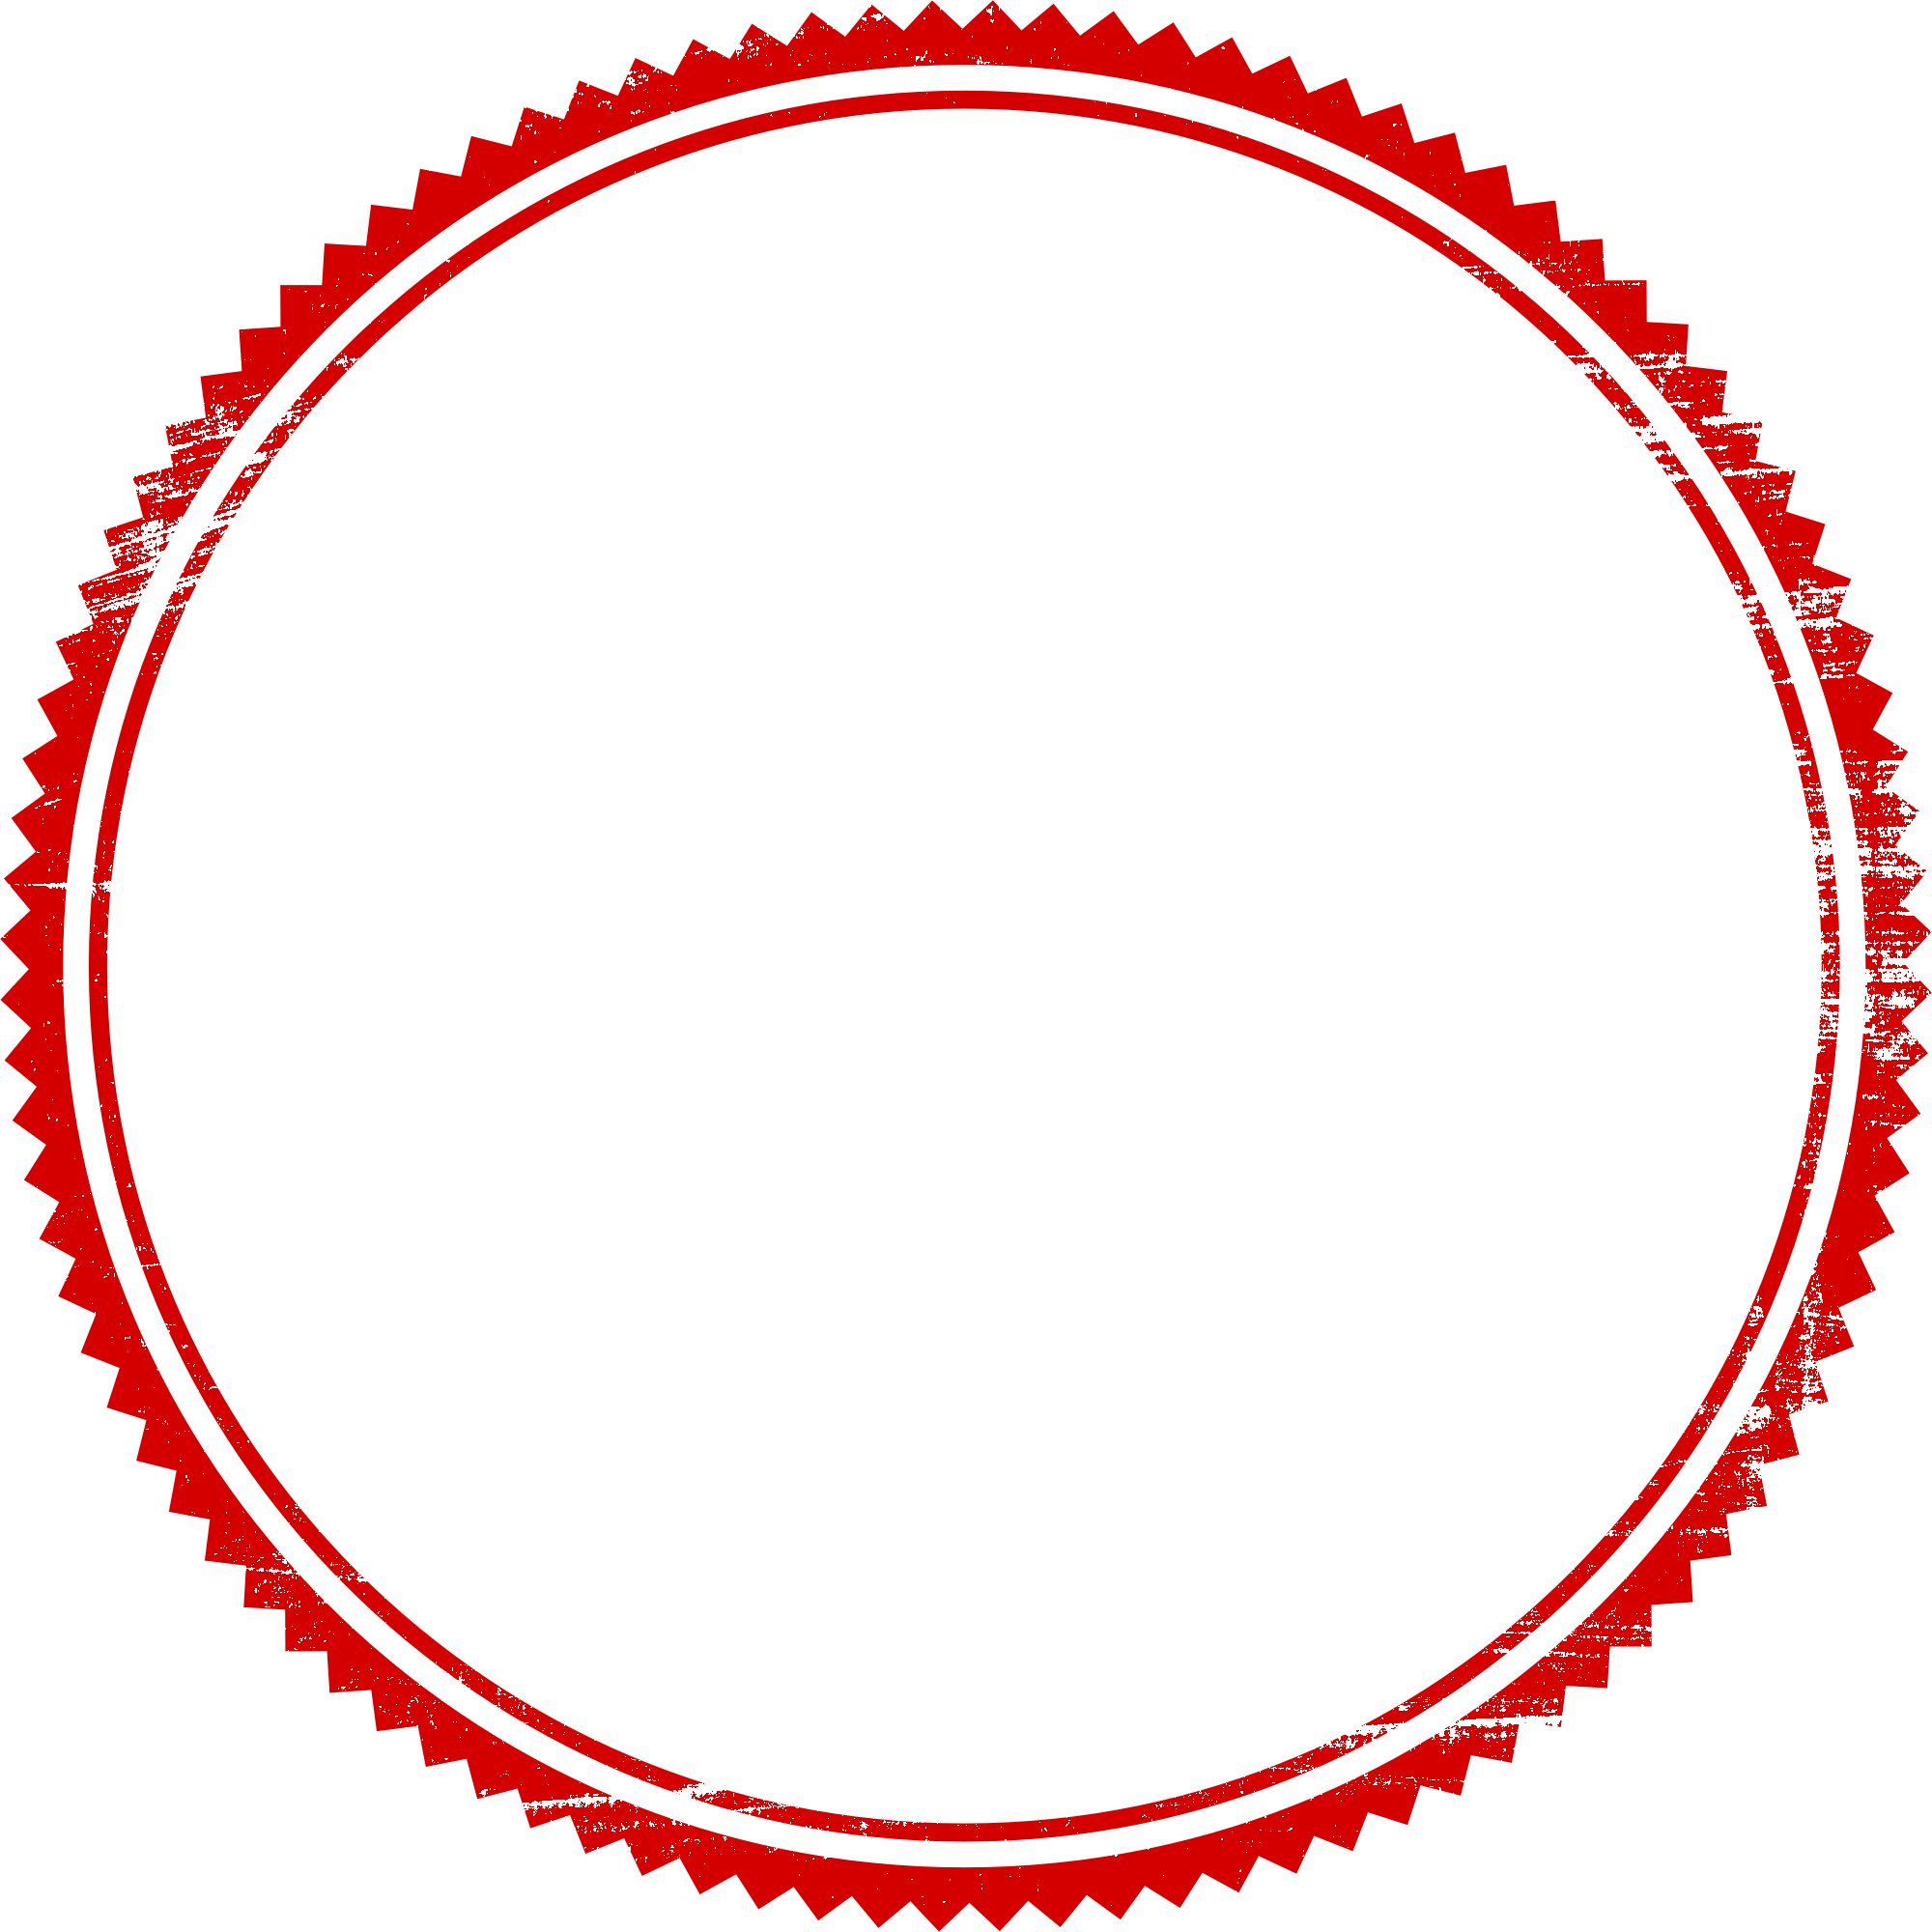 red empty vector. Stamp clipart circle